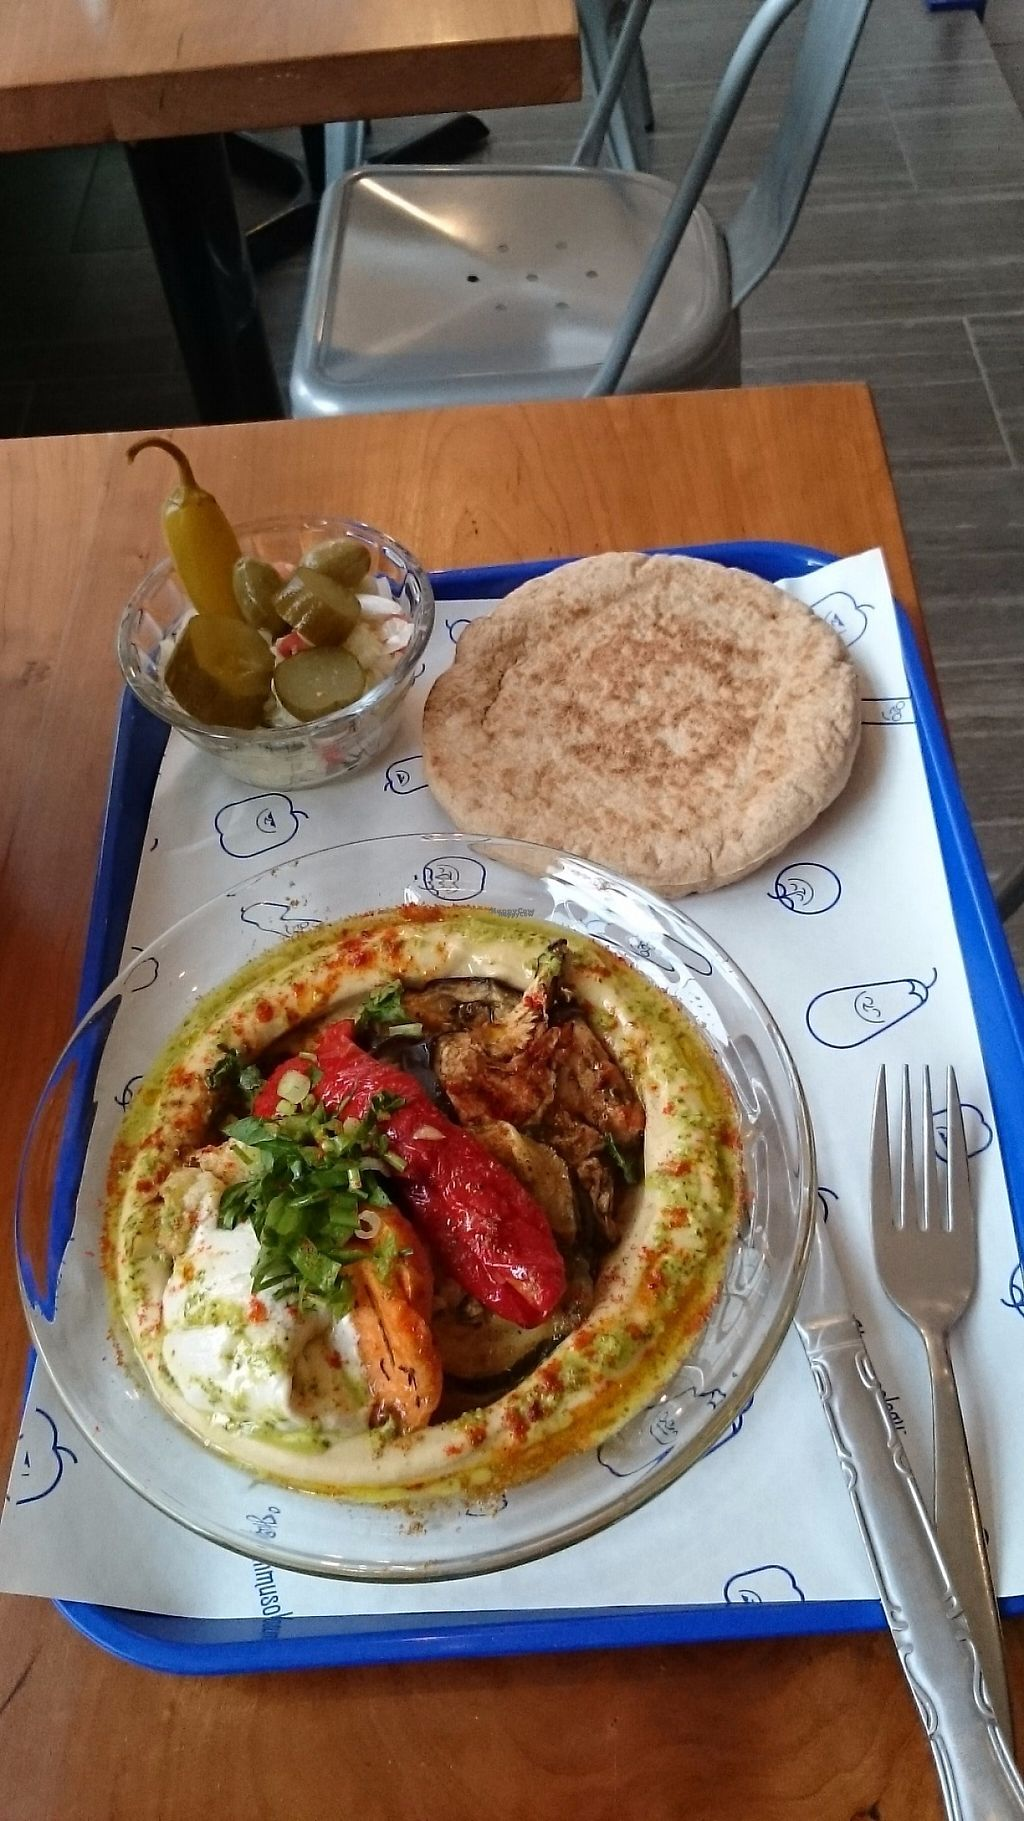 """Photo of Hummusology  by <a href=""""/members/profile/ZoraySpielvogel"""">ZoraySpielvogel</a> <br/>8 out of 11 menu item includes pita, salad & pickles.  <br/> December 25, 2016  - <a href='/contact/abuse/image/84450/204662'>Report</a>"""